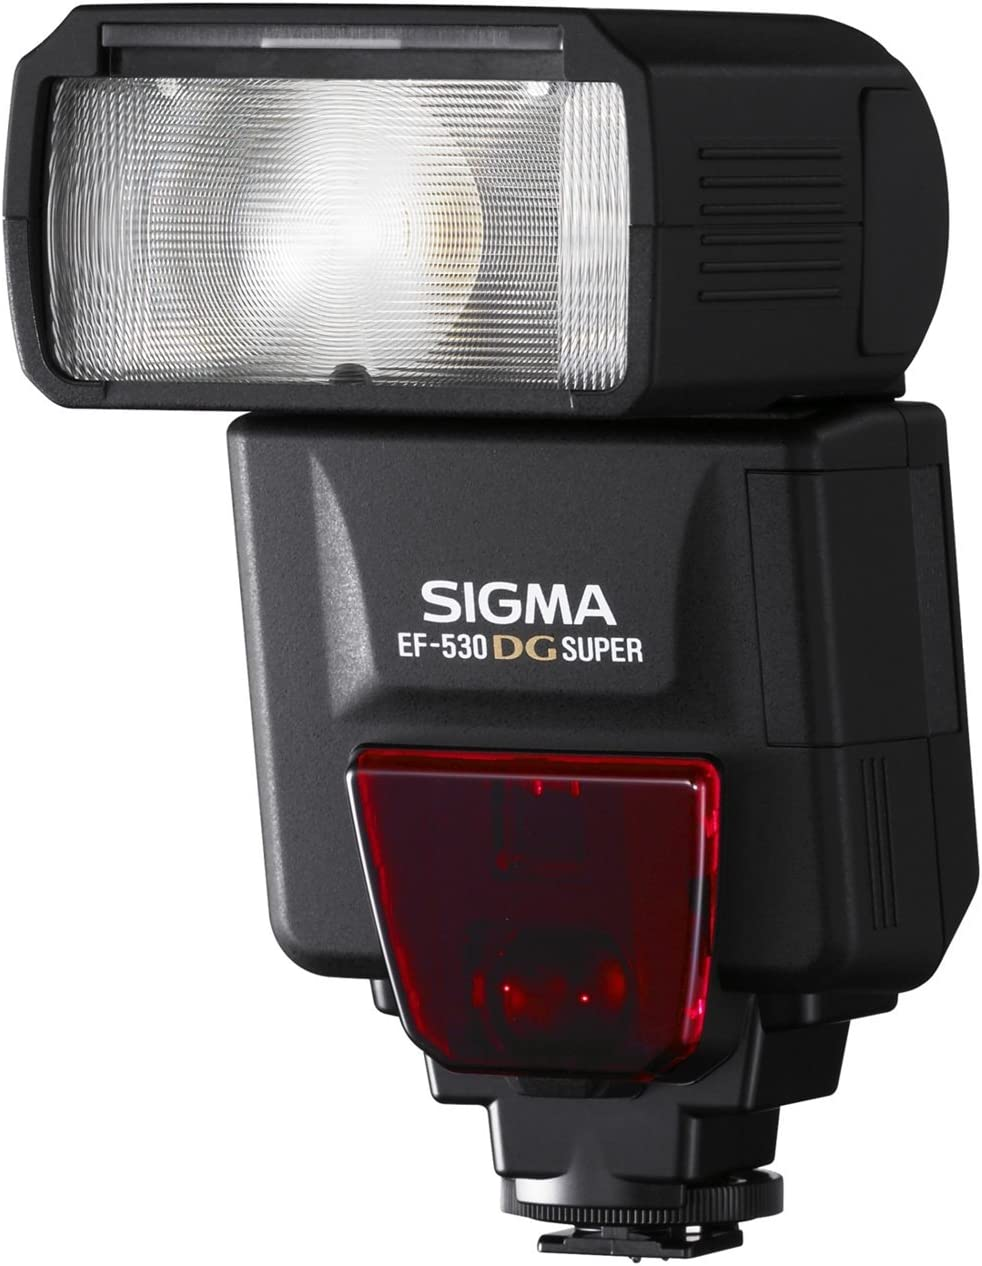 Certified Refurbished Sigma EF-530 DG Super Electronic Flash for Canon DSLR